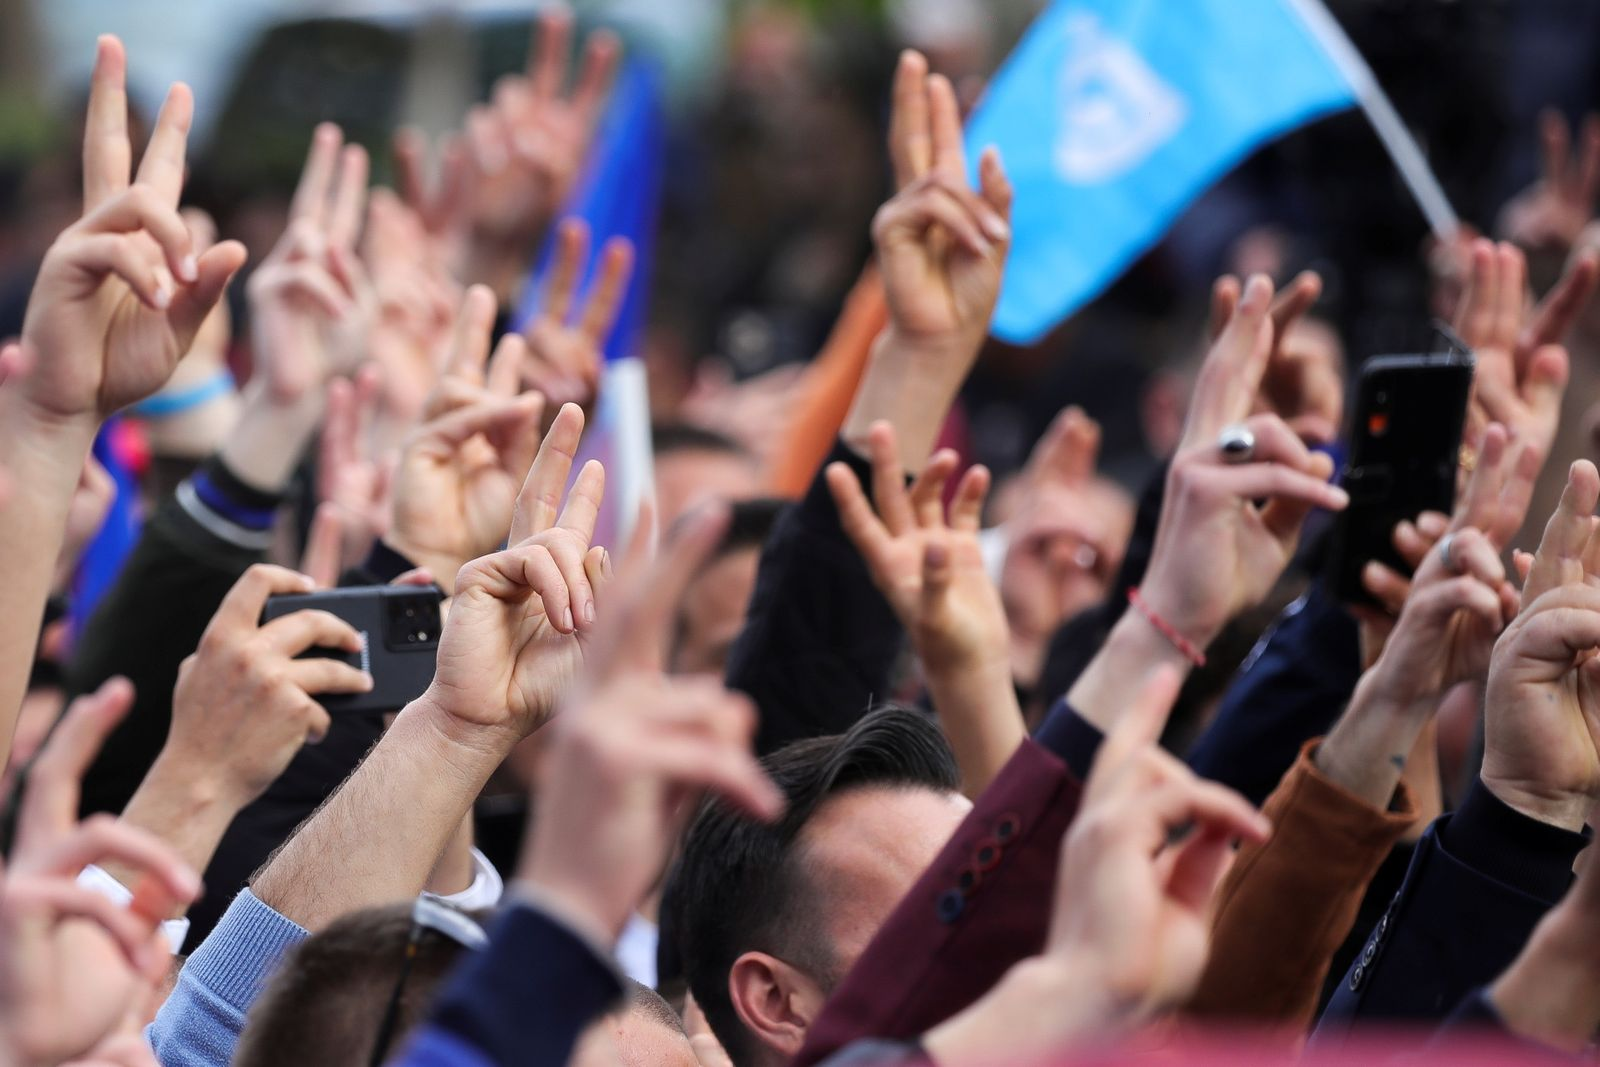 People attend an election rally held by Albania's opposition Democratic Party leader Lulzim Basha in Berat